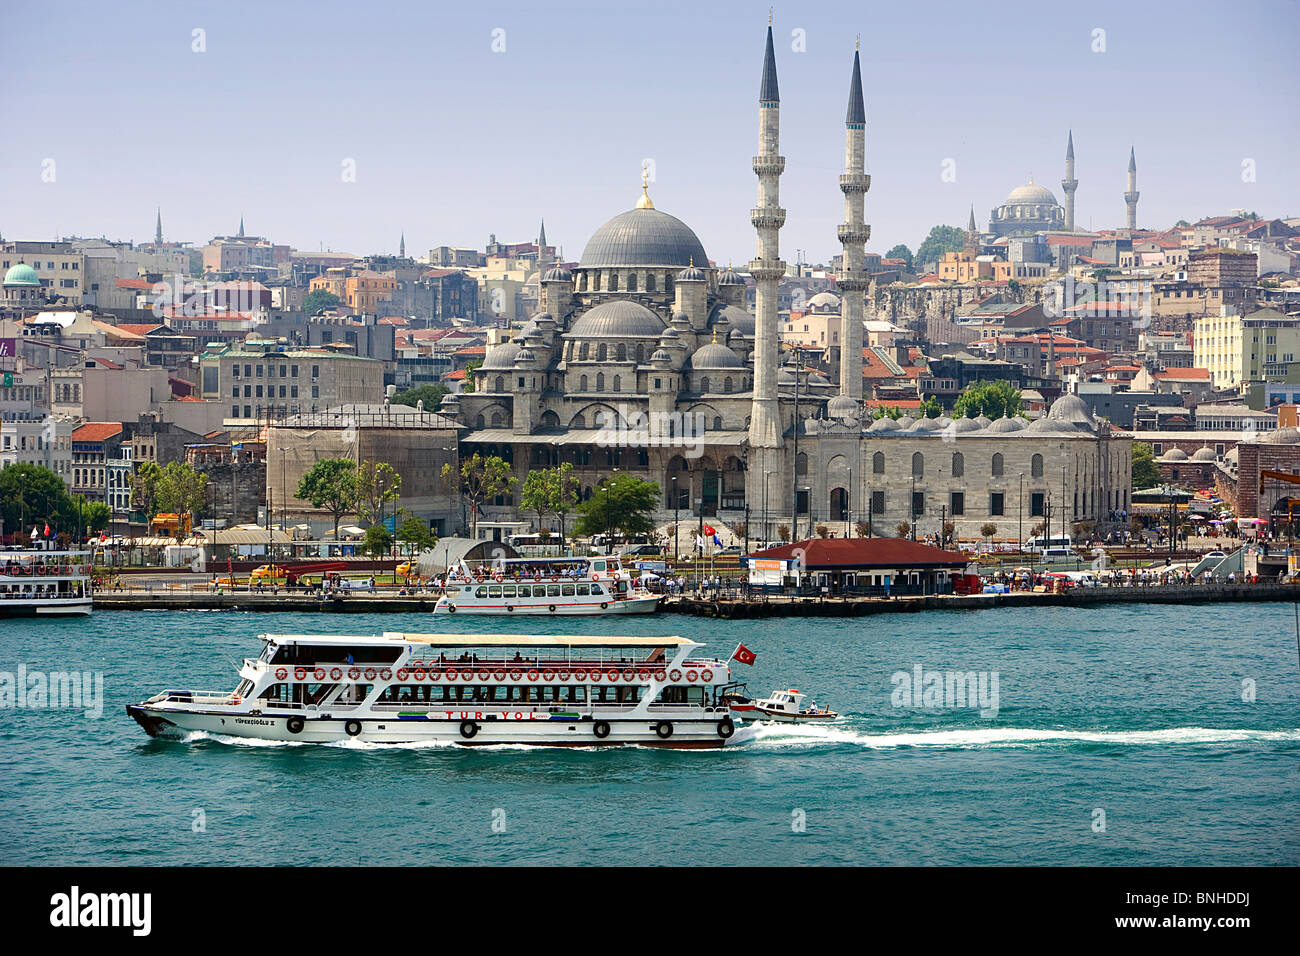 Turkey June 2008 Istanbul city Yeni Mosque ship sea - Stock Image